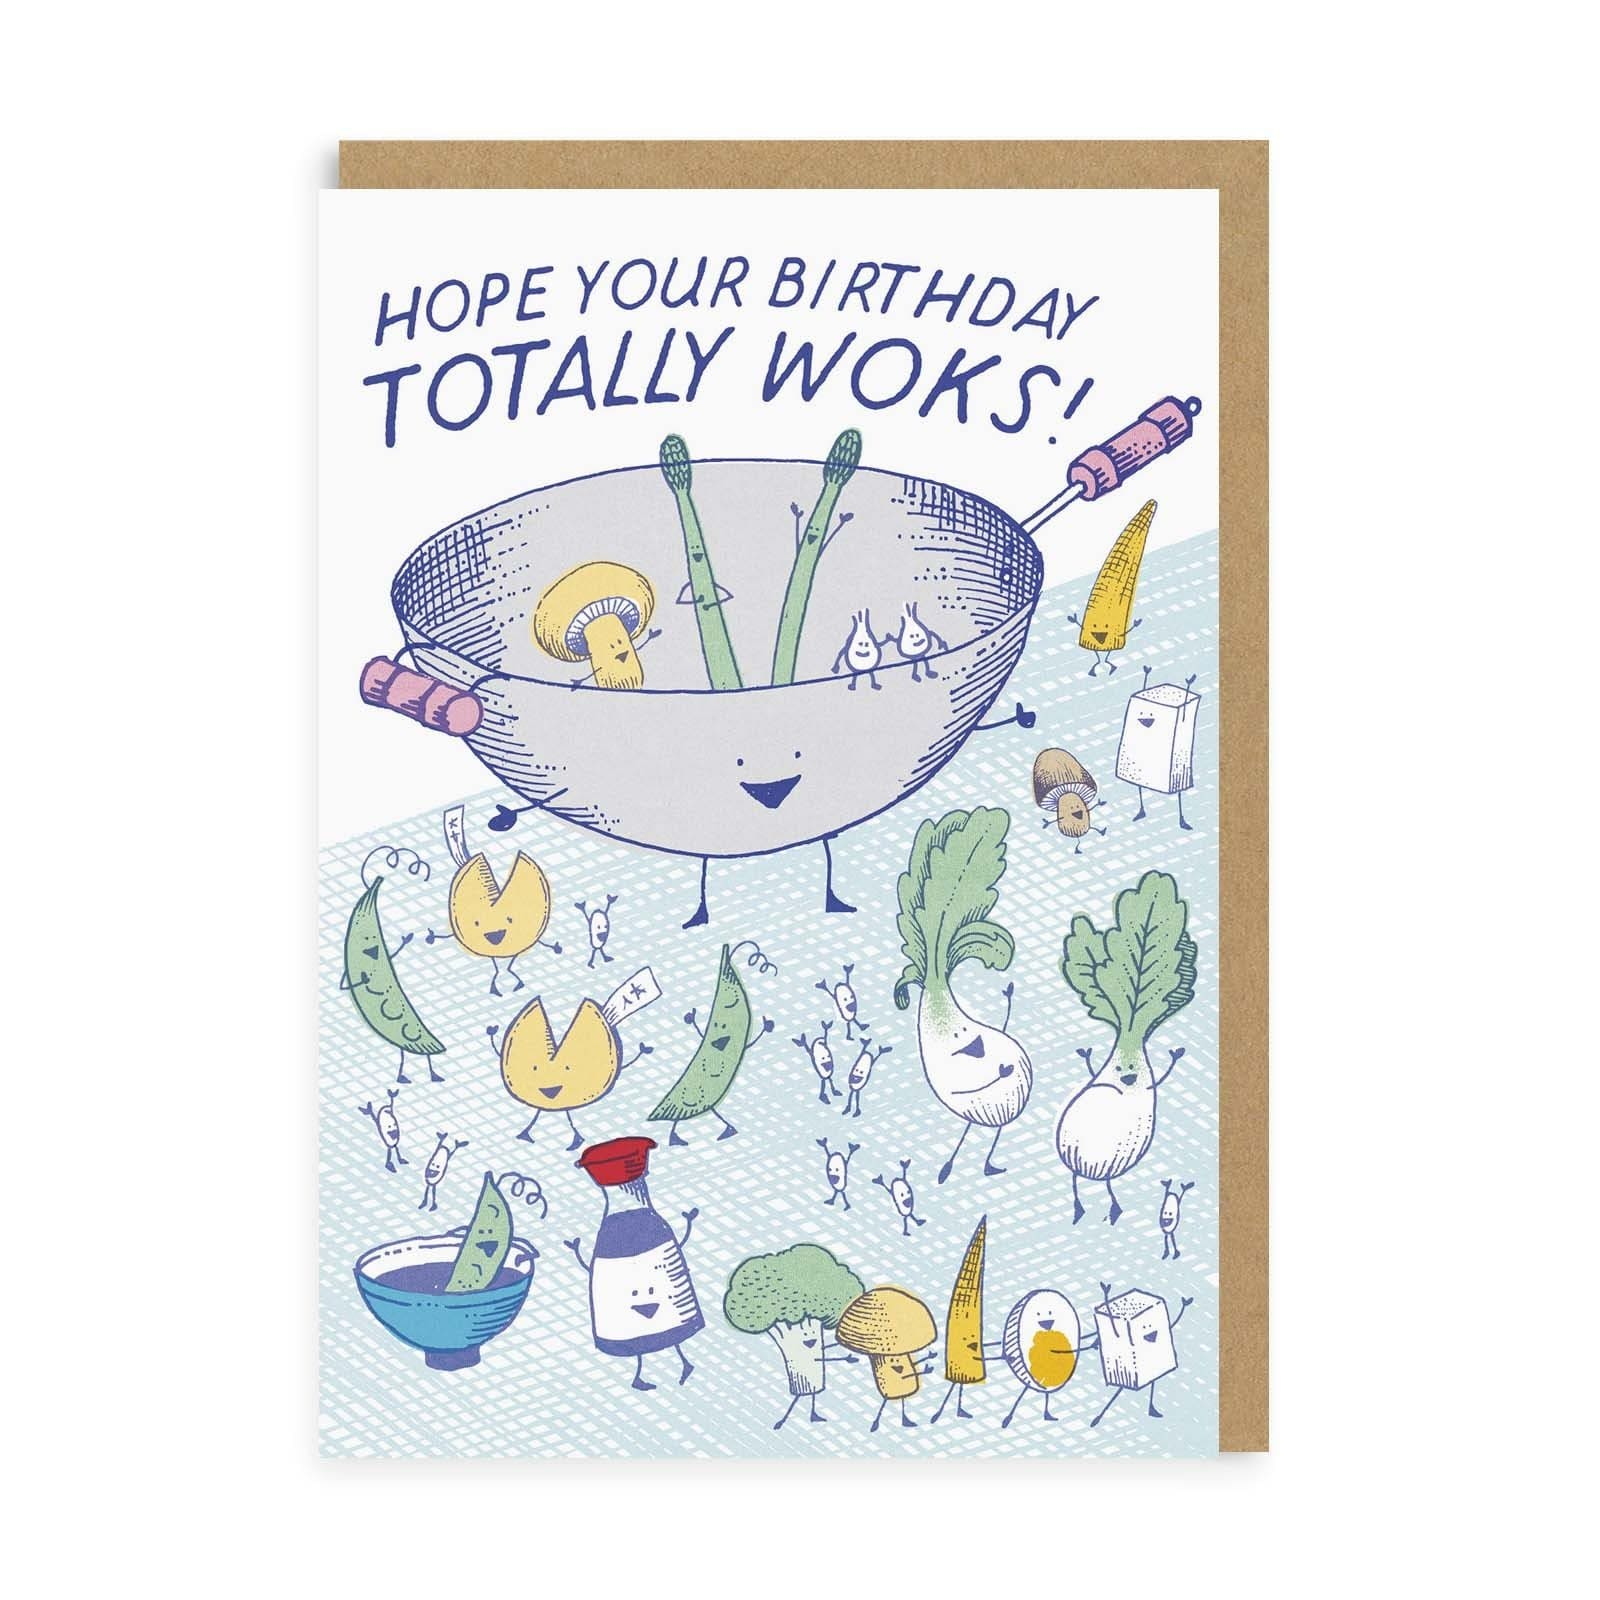 Totally Woks Birthday Greeting Card